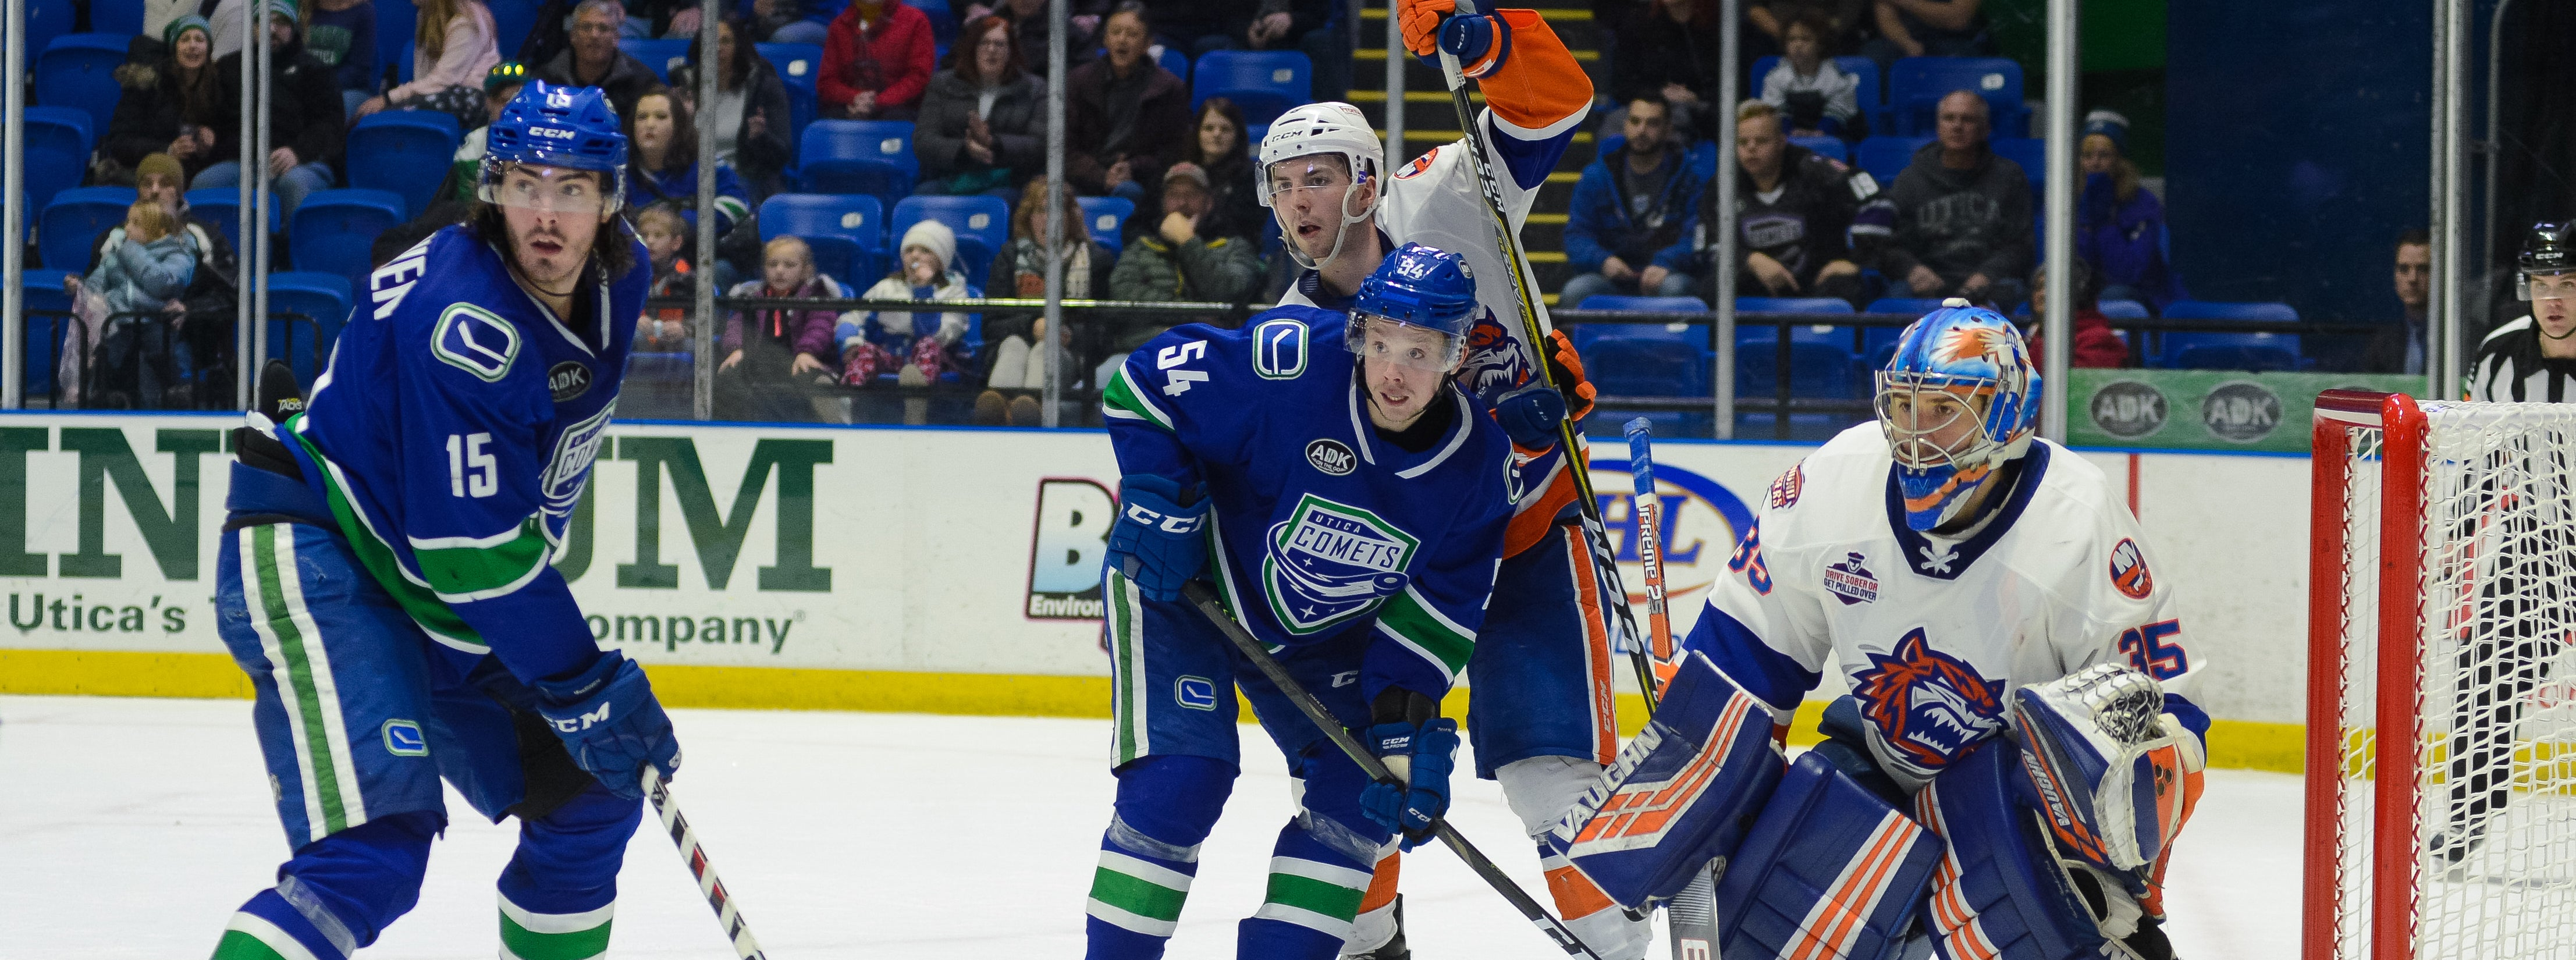 COMETS HEAD TO CONNECTICUT TO FACE SOUND TIGERS